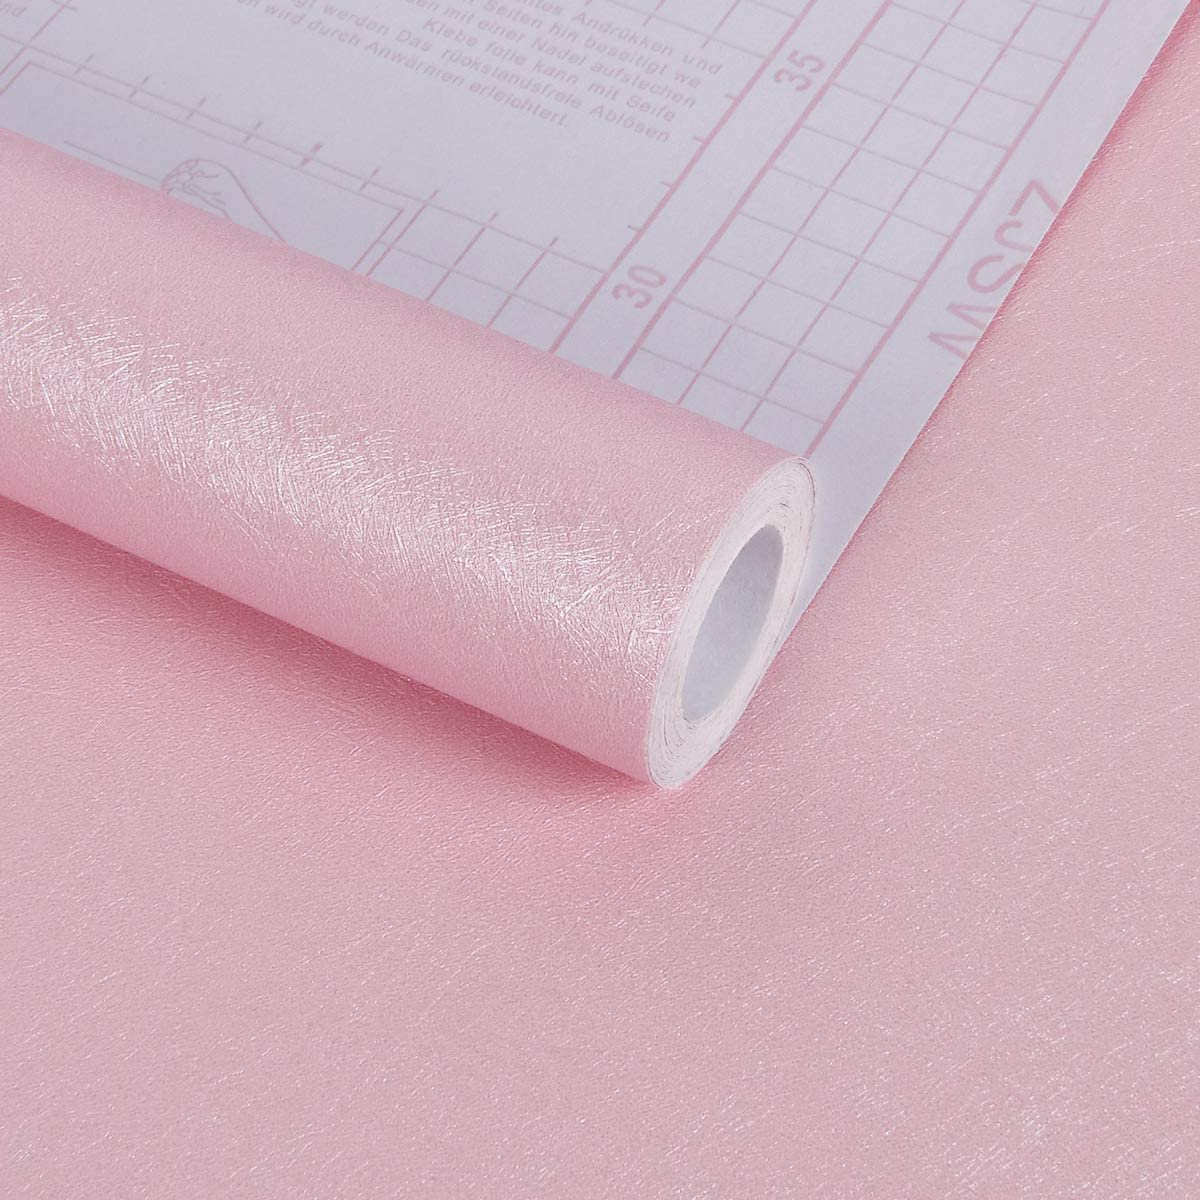 Melwod 2021 new Pink Contact Paper 17.71'' x Wallpap 118'' Peel Chicago Mall and Stick